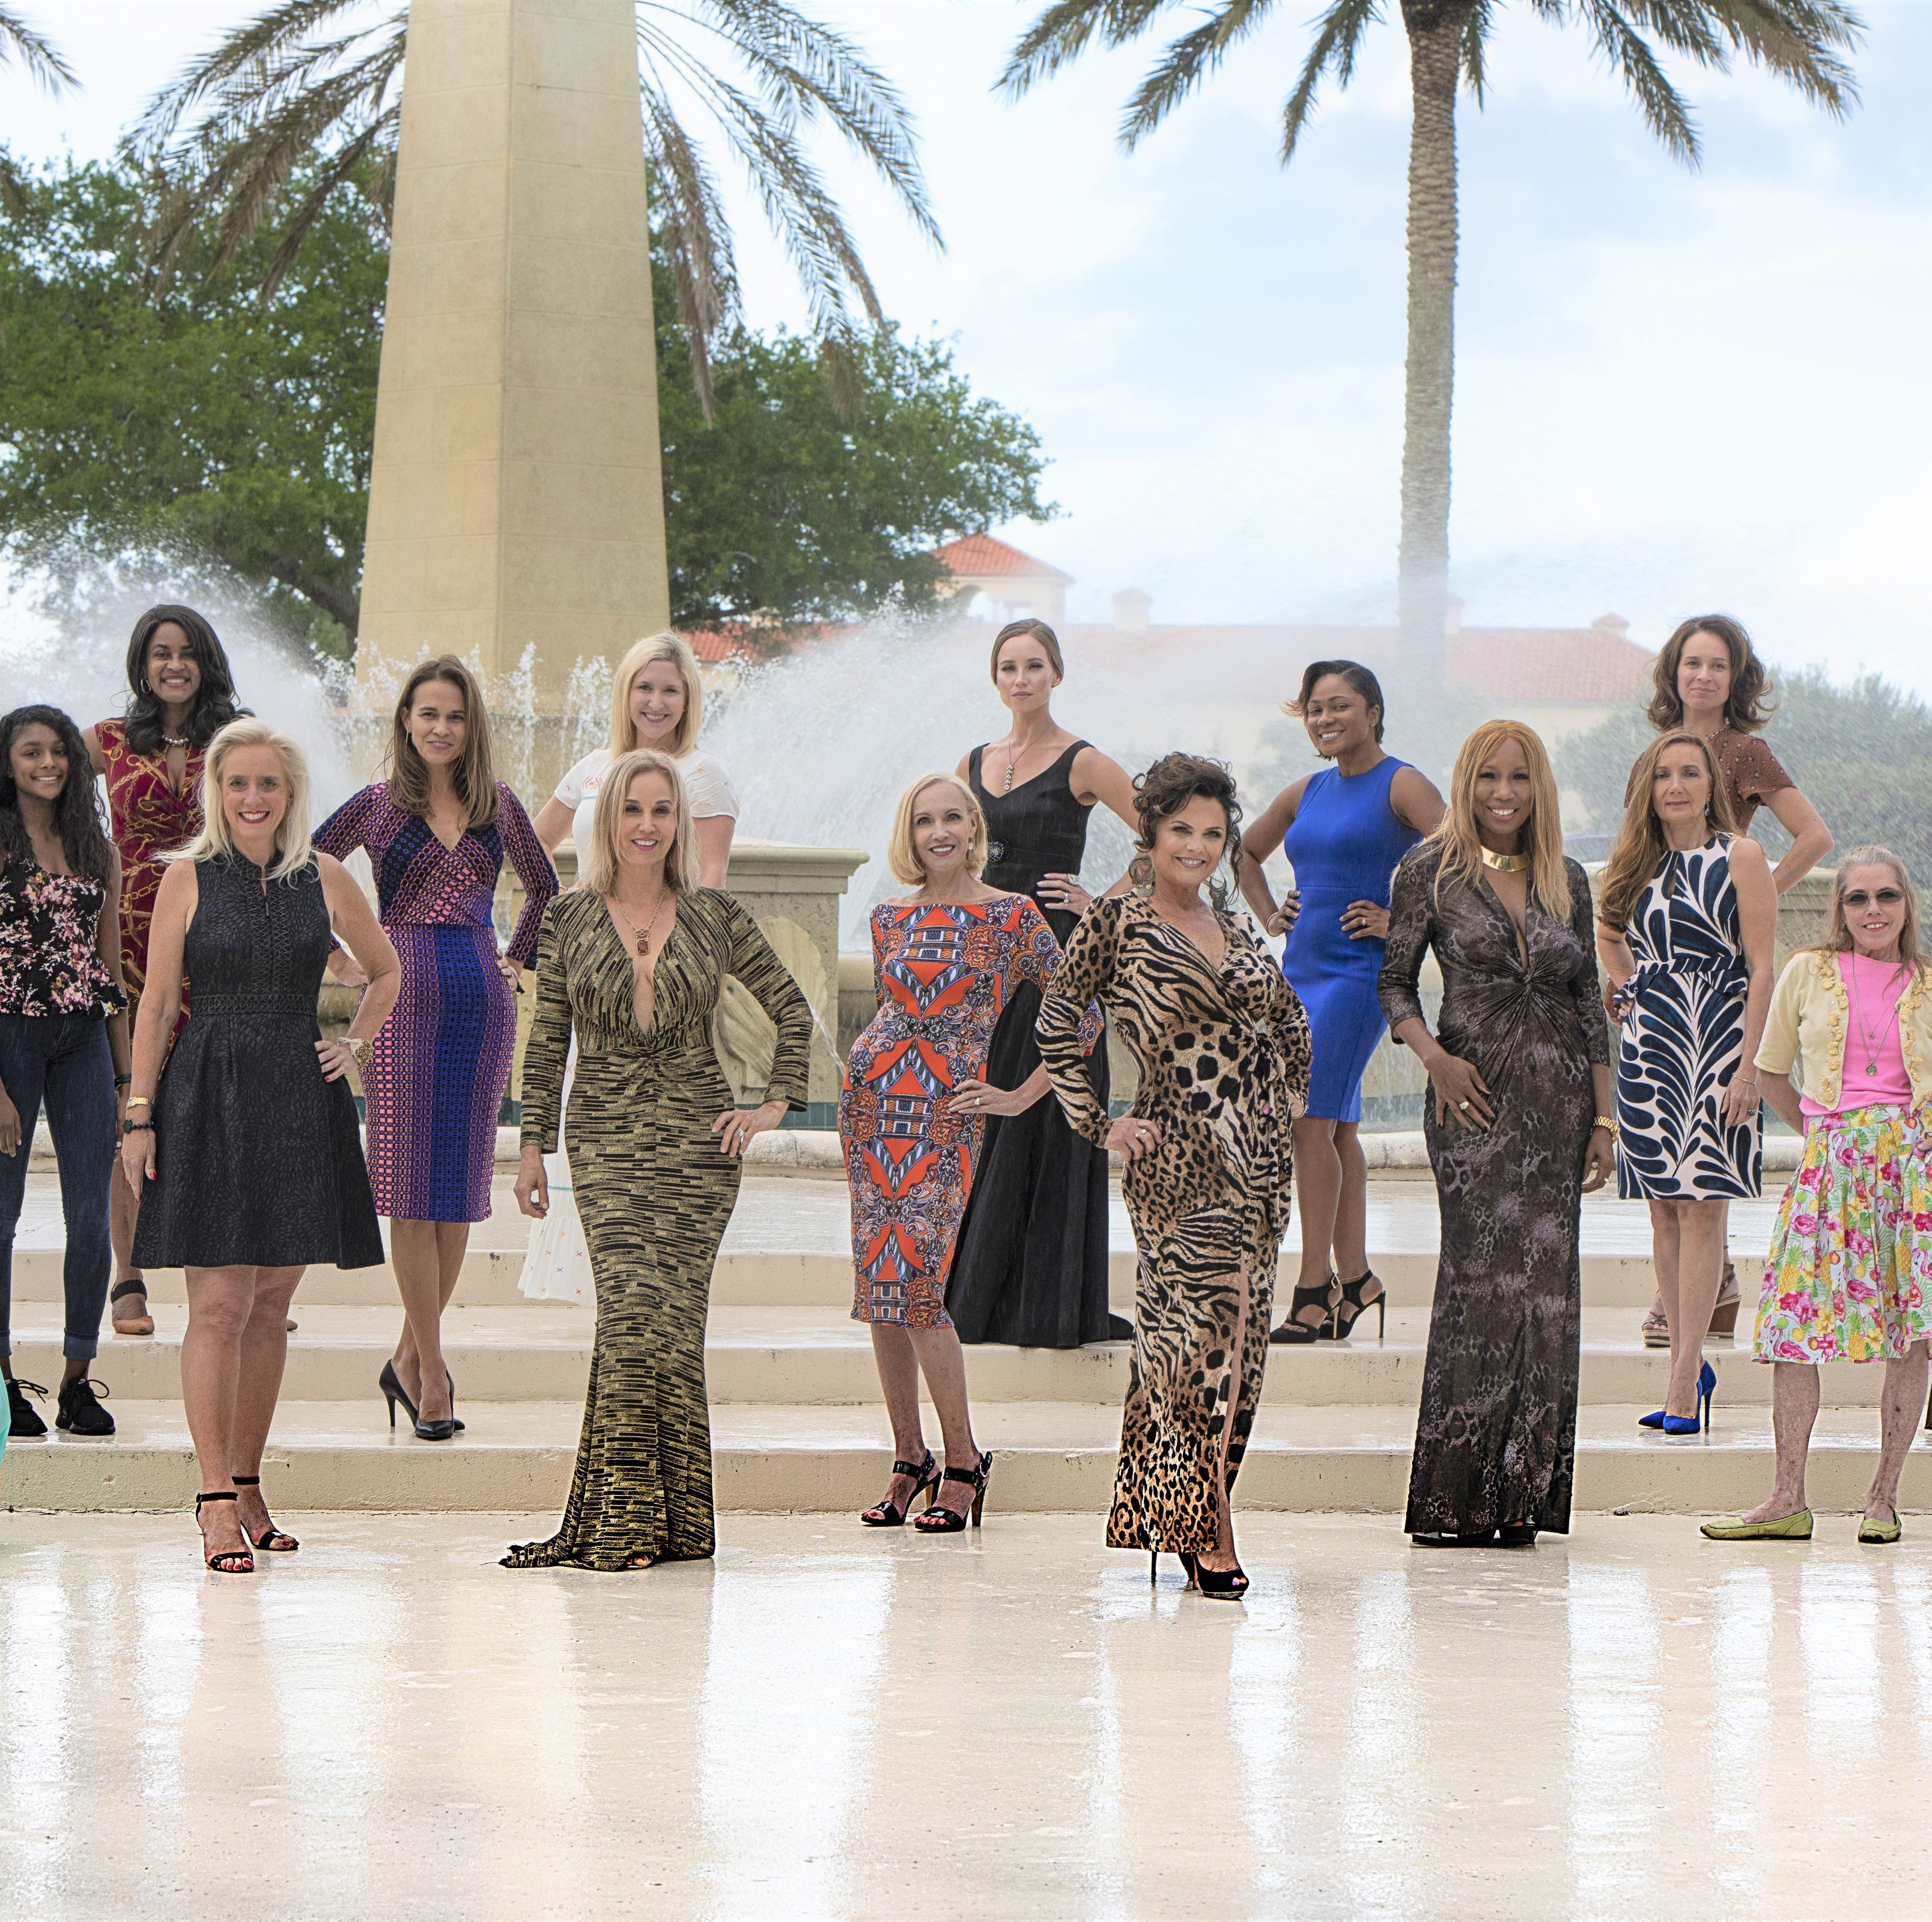 Original fashions by Treasure Coast designers showcased May 20 at Grand Harbor